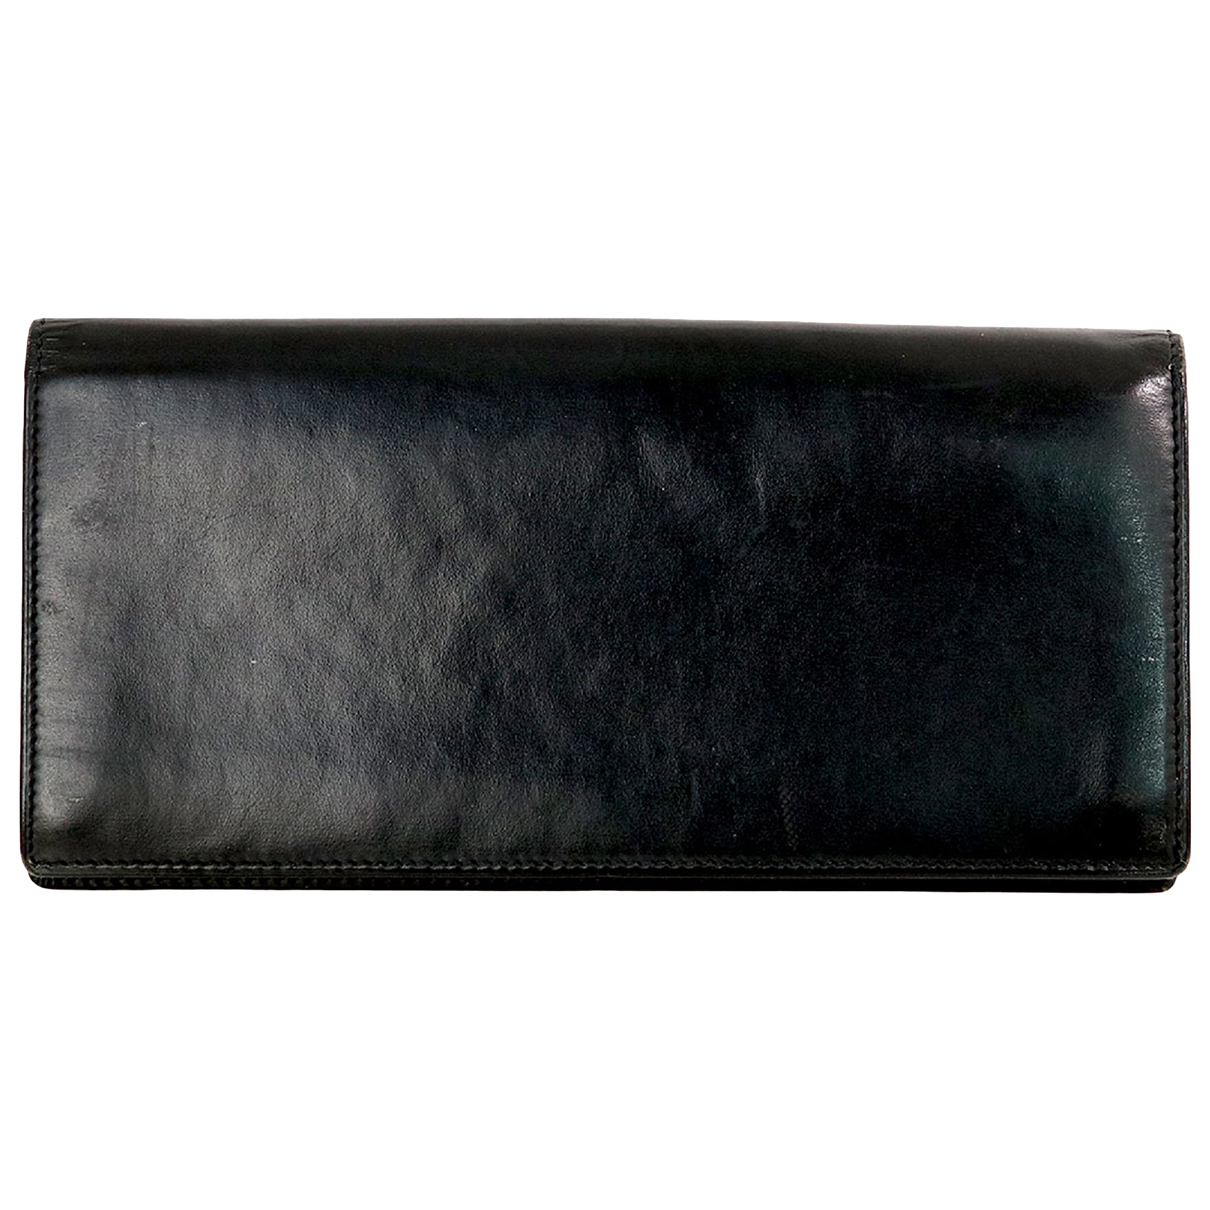 Cartier N Black Leather wallet for Women N